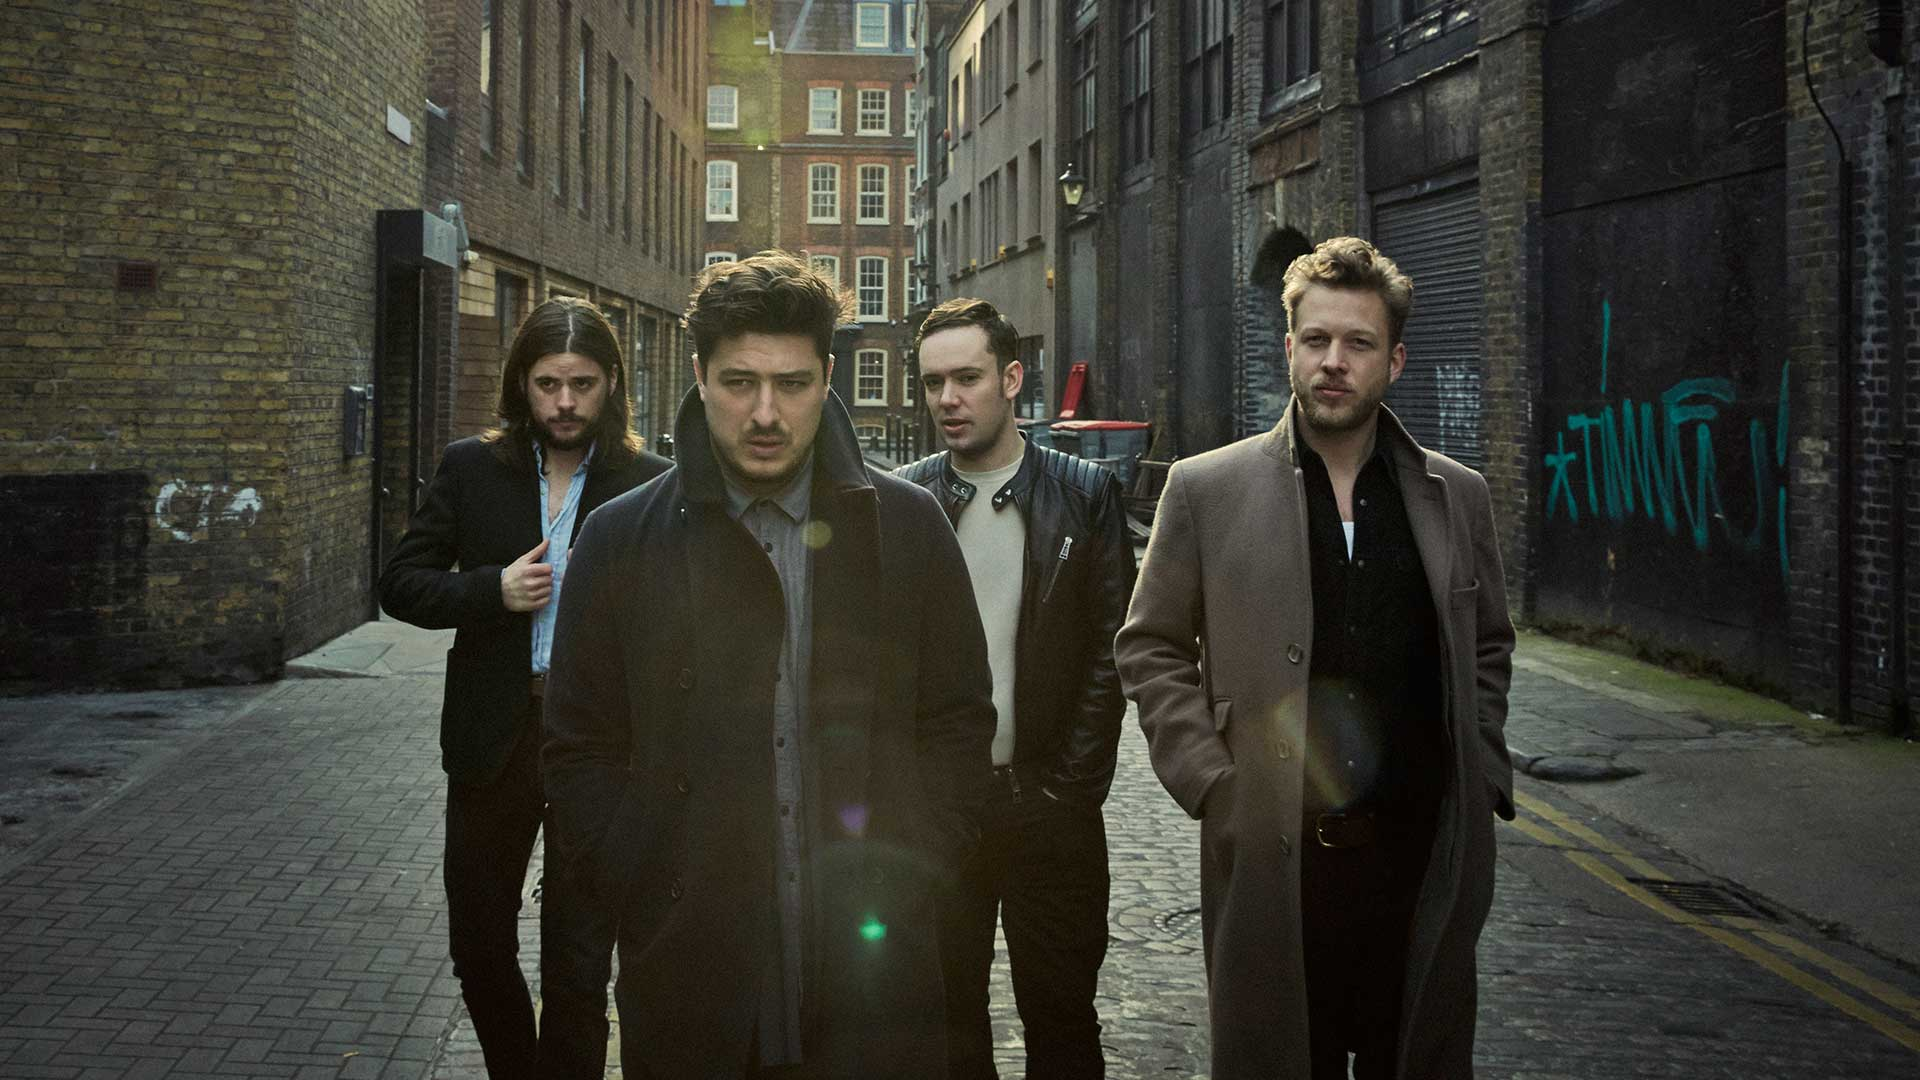 Mumford  Sons Were fans of faith not religion  The